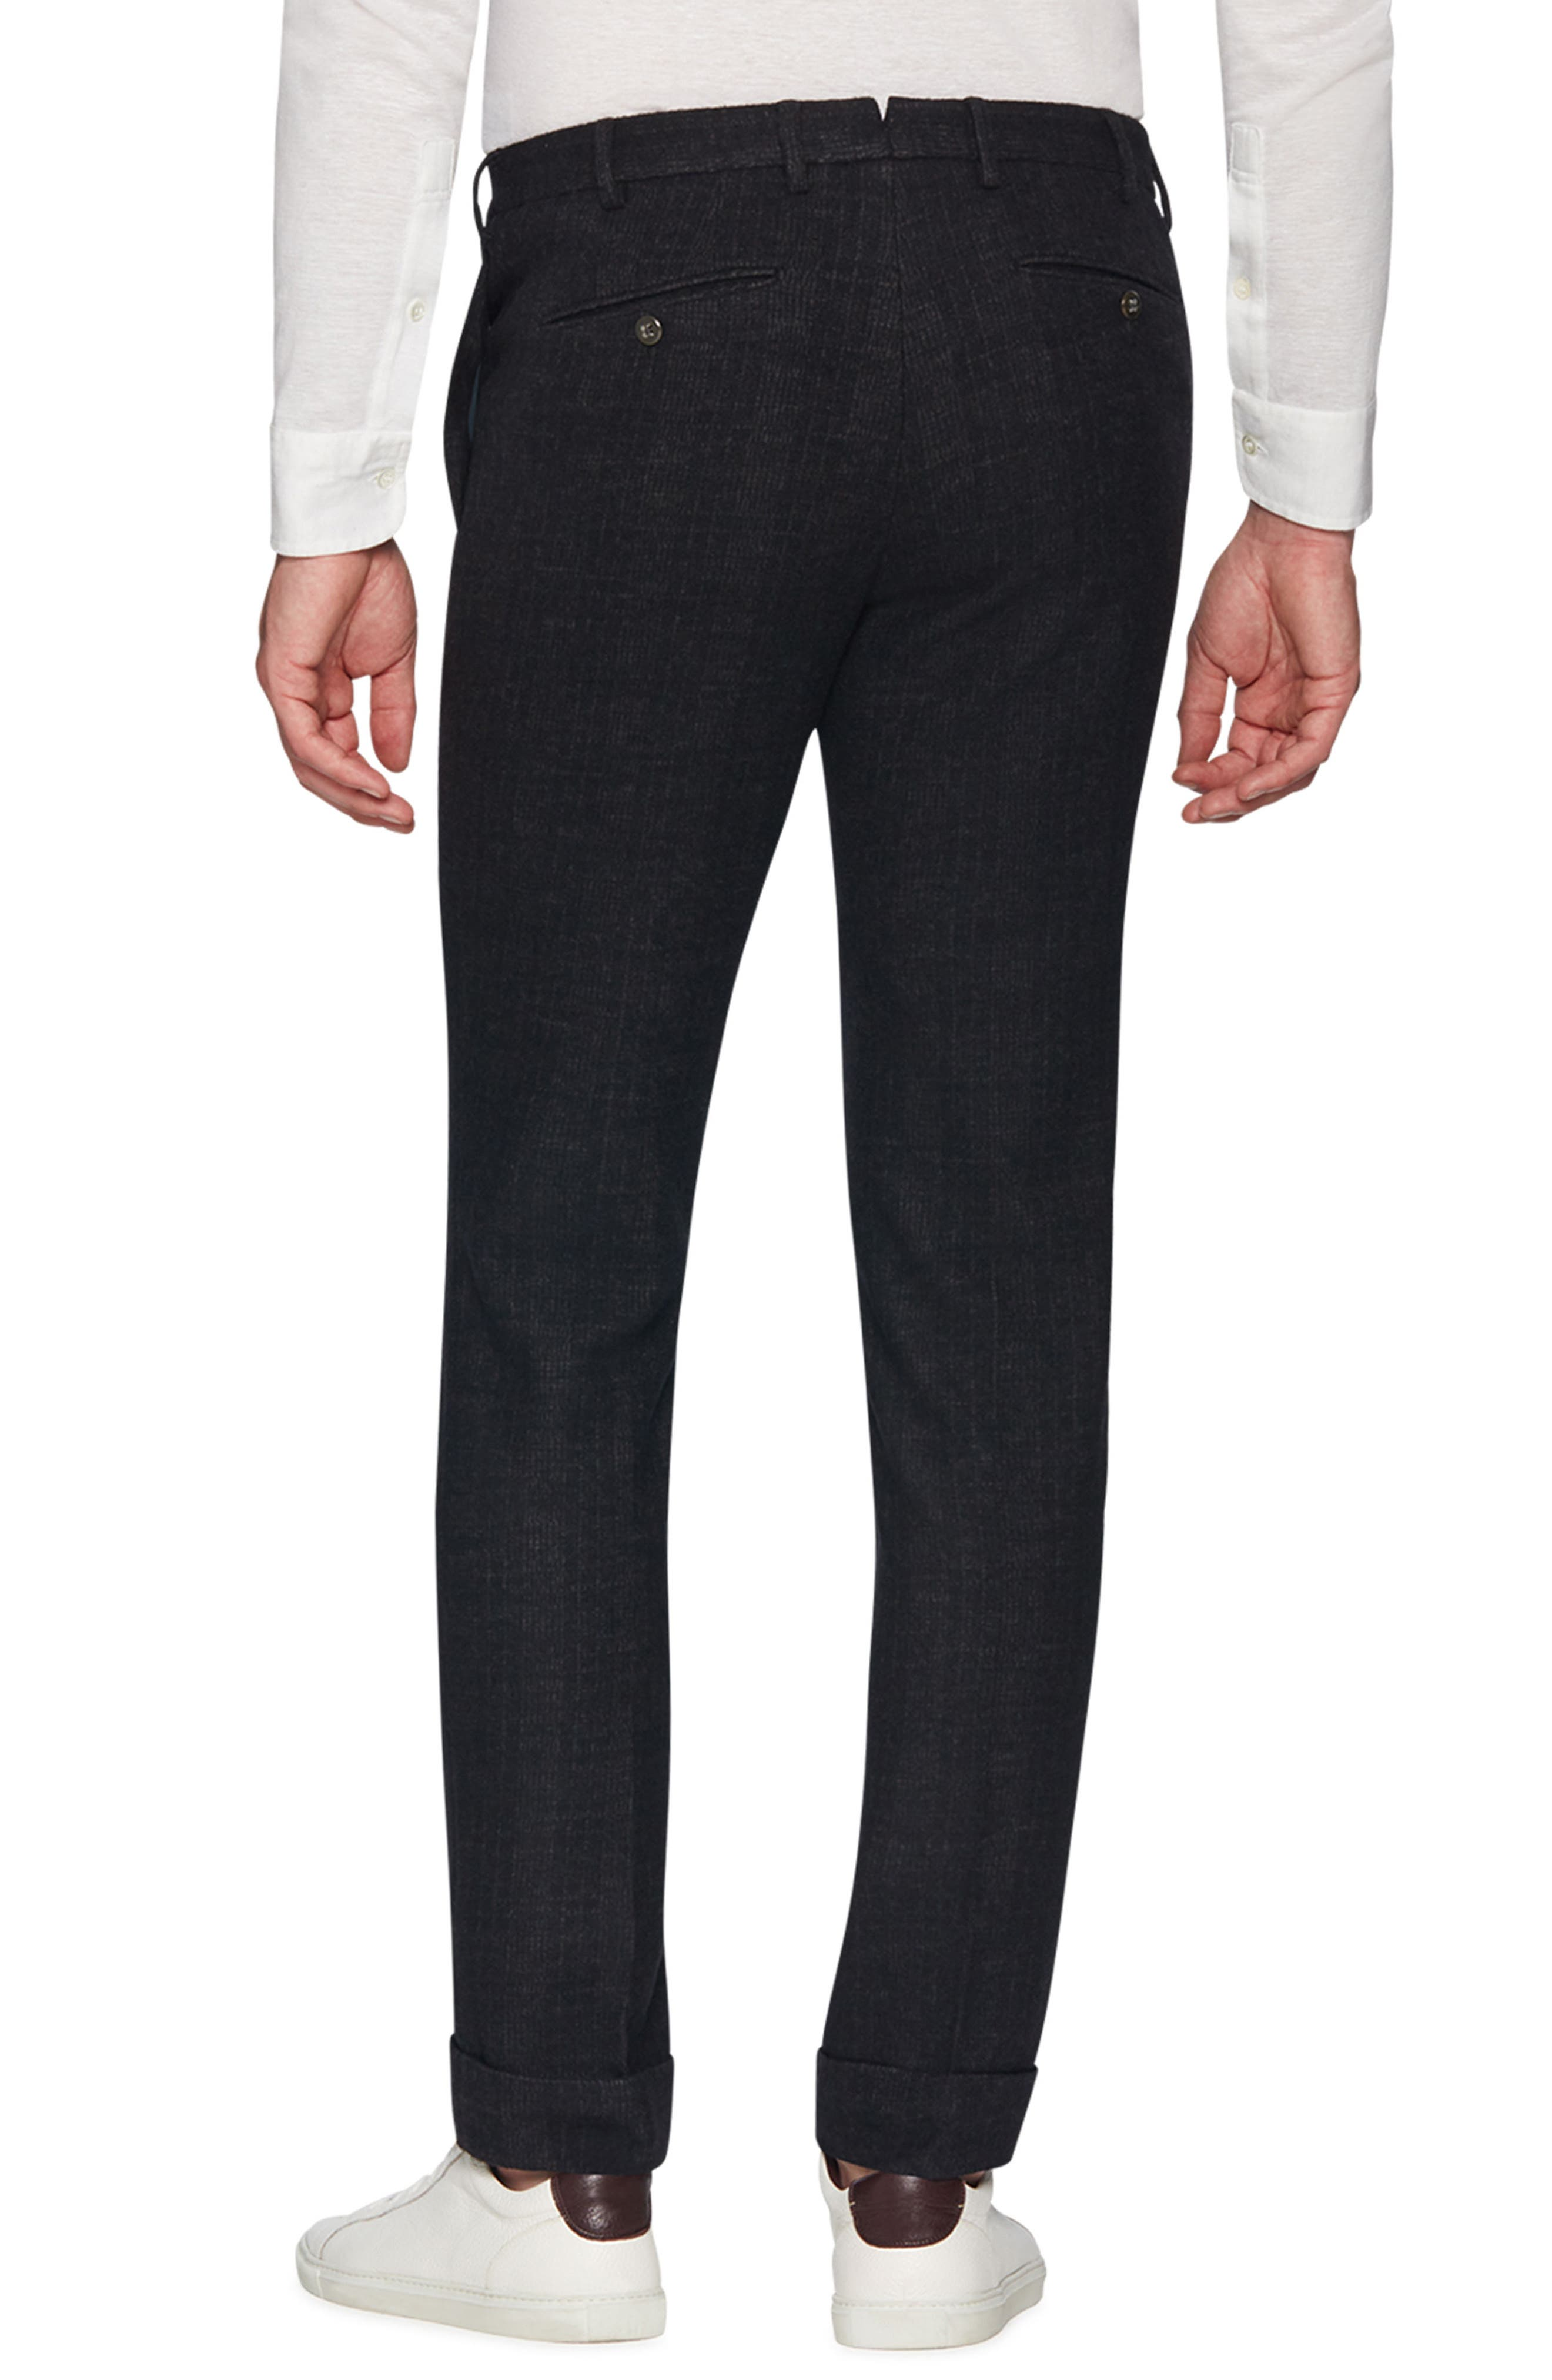 Josh Wool Blend Jersey Trousers,                             Alternate thumbnail 2, color,                             CHARCOAL